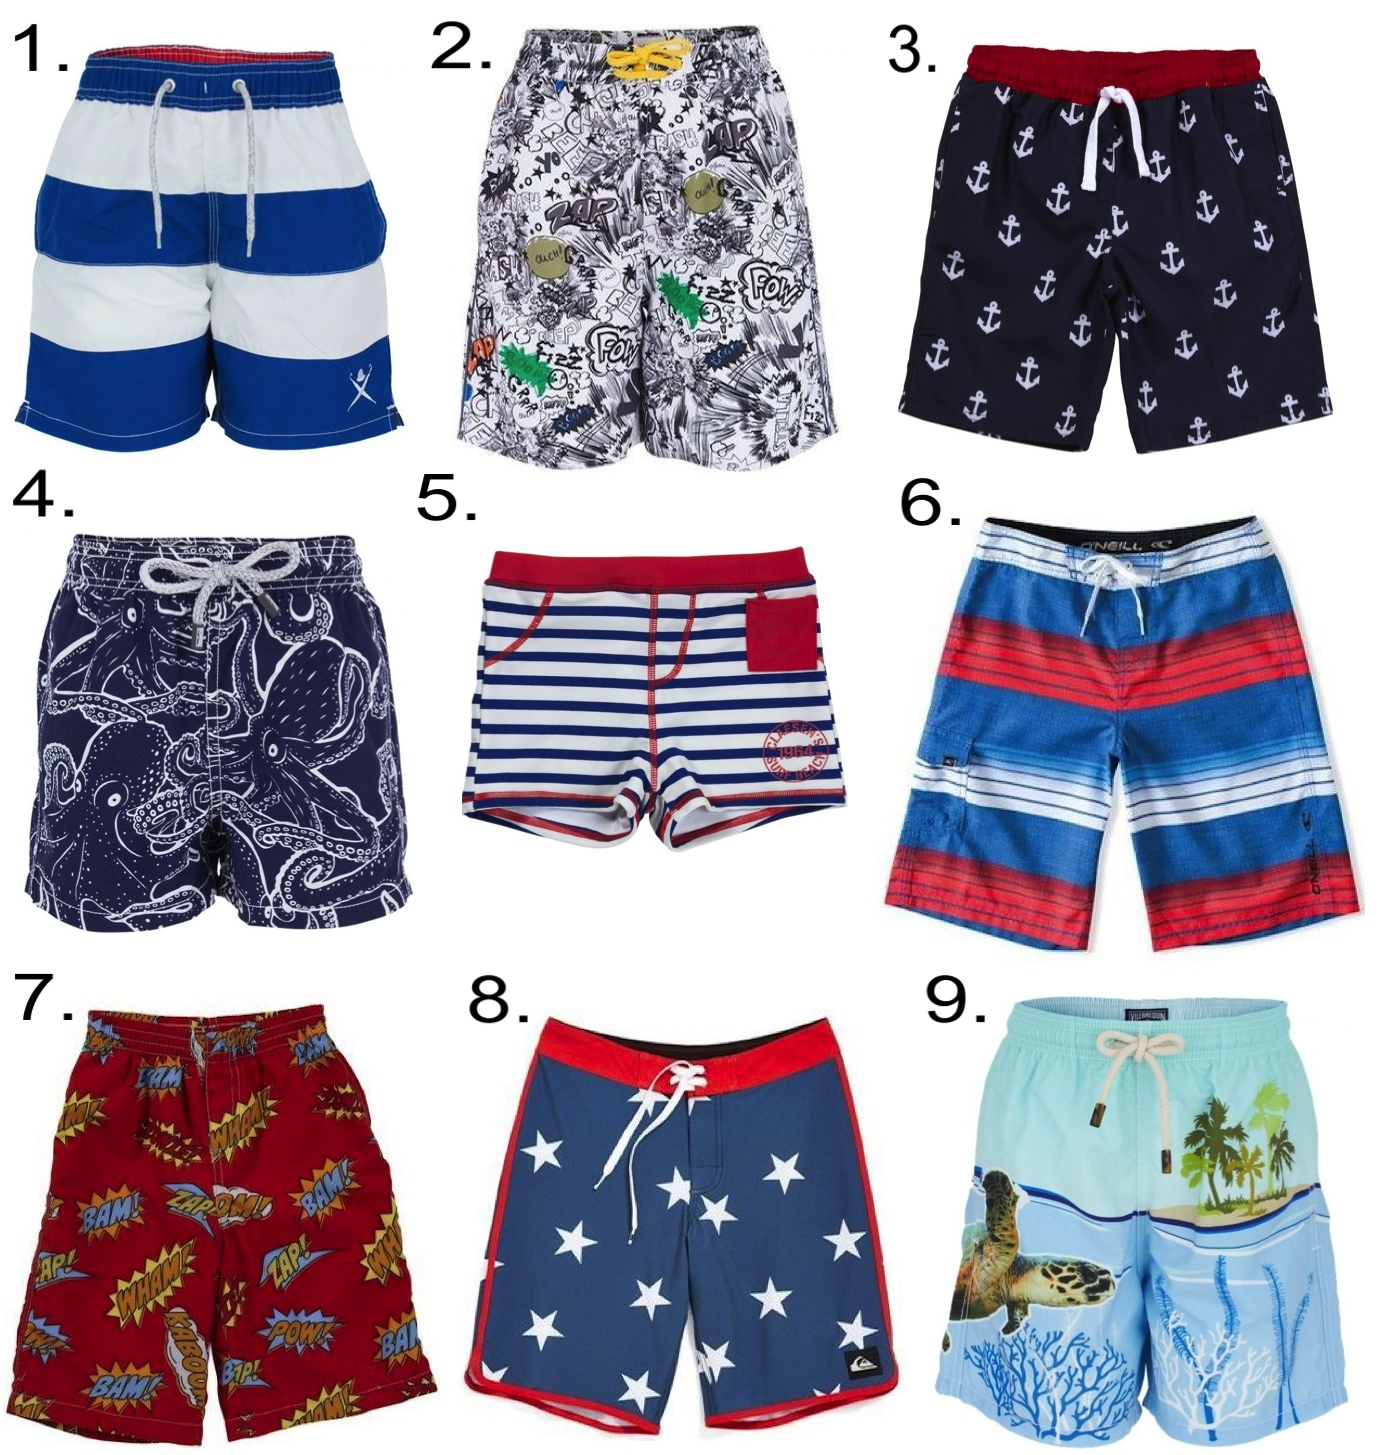 Boys Labor Day Swimwear... 1.  Hackett Stripe Swim Shorts  2.  Stella McCartney Kids Graffiti Print Swim Shorts  3.  Egg by Susan Lazar Board Shorts  4.  Vilebrequin Octopus Trunks  5.  Claesen's Swim Trunks  6.  O'Neill 'Santa Cruz Stripe' Board Shorts     7.  City Threads Comic Swim Trunk  8.  Quiksilver 'OG Retro' Board Shorts  9.  Vilebrequin Turtle Swim Shorts